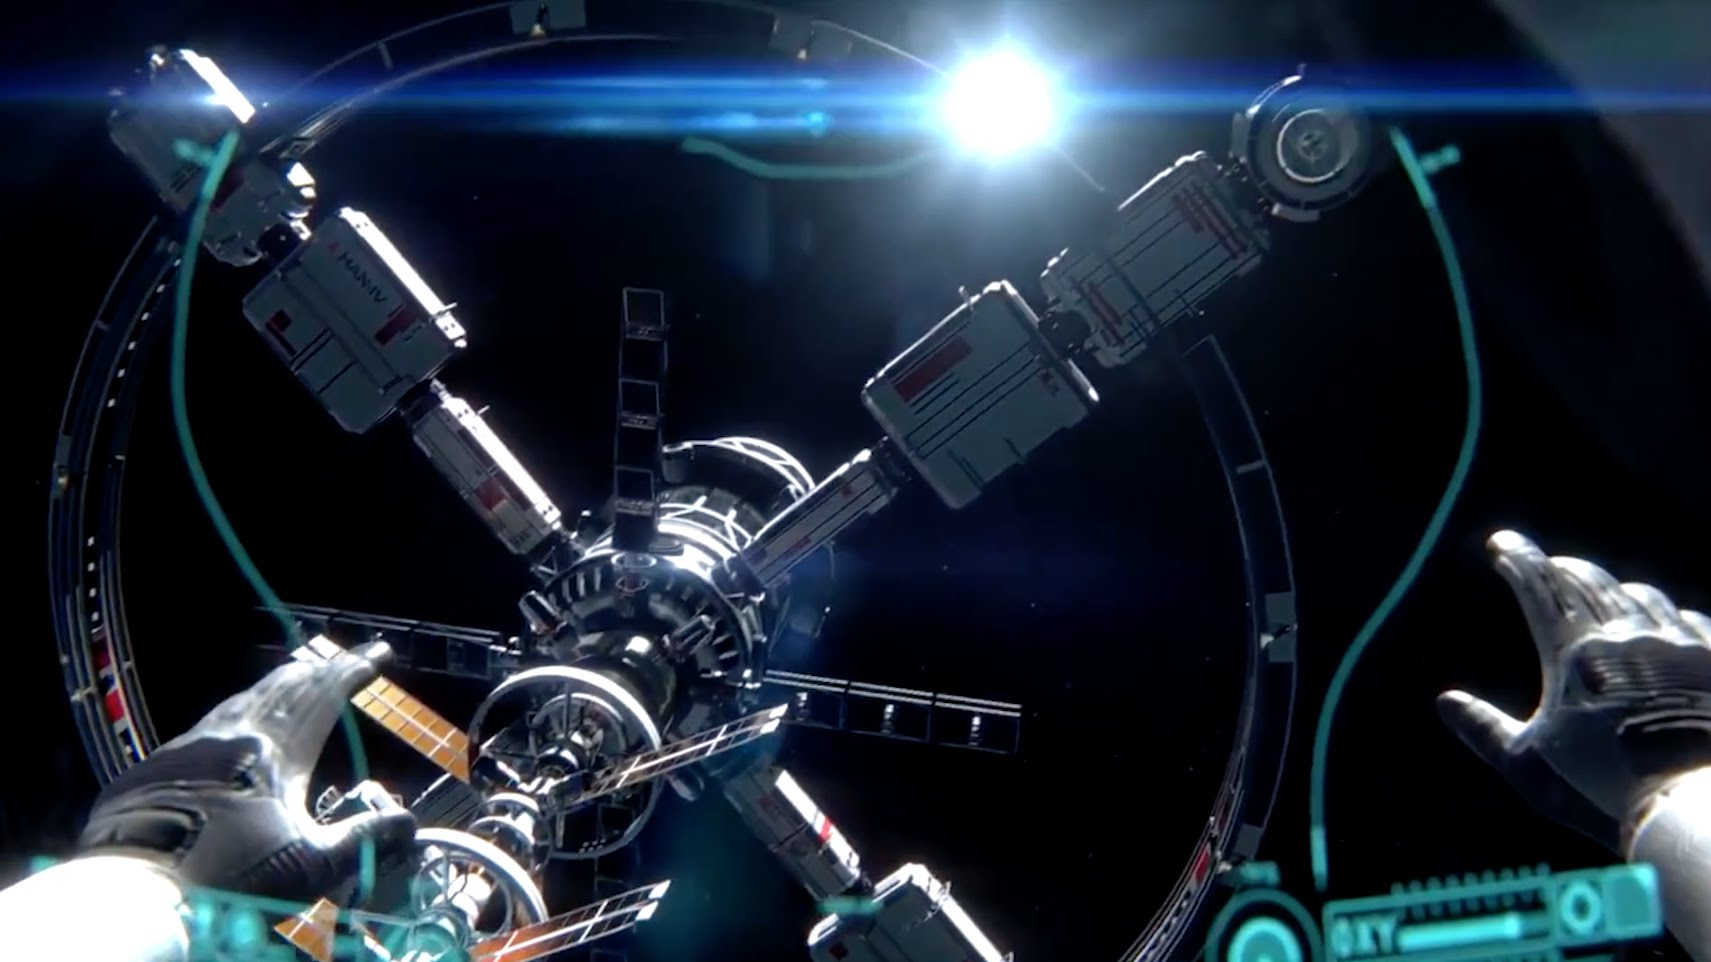 The Work of ADR1FT Creator Adam Orth: NYFA Game Design Guest Lecturer